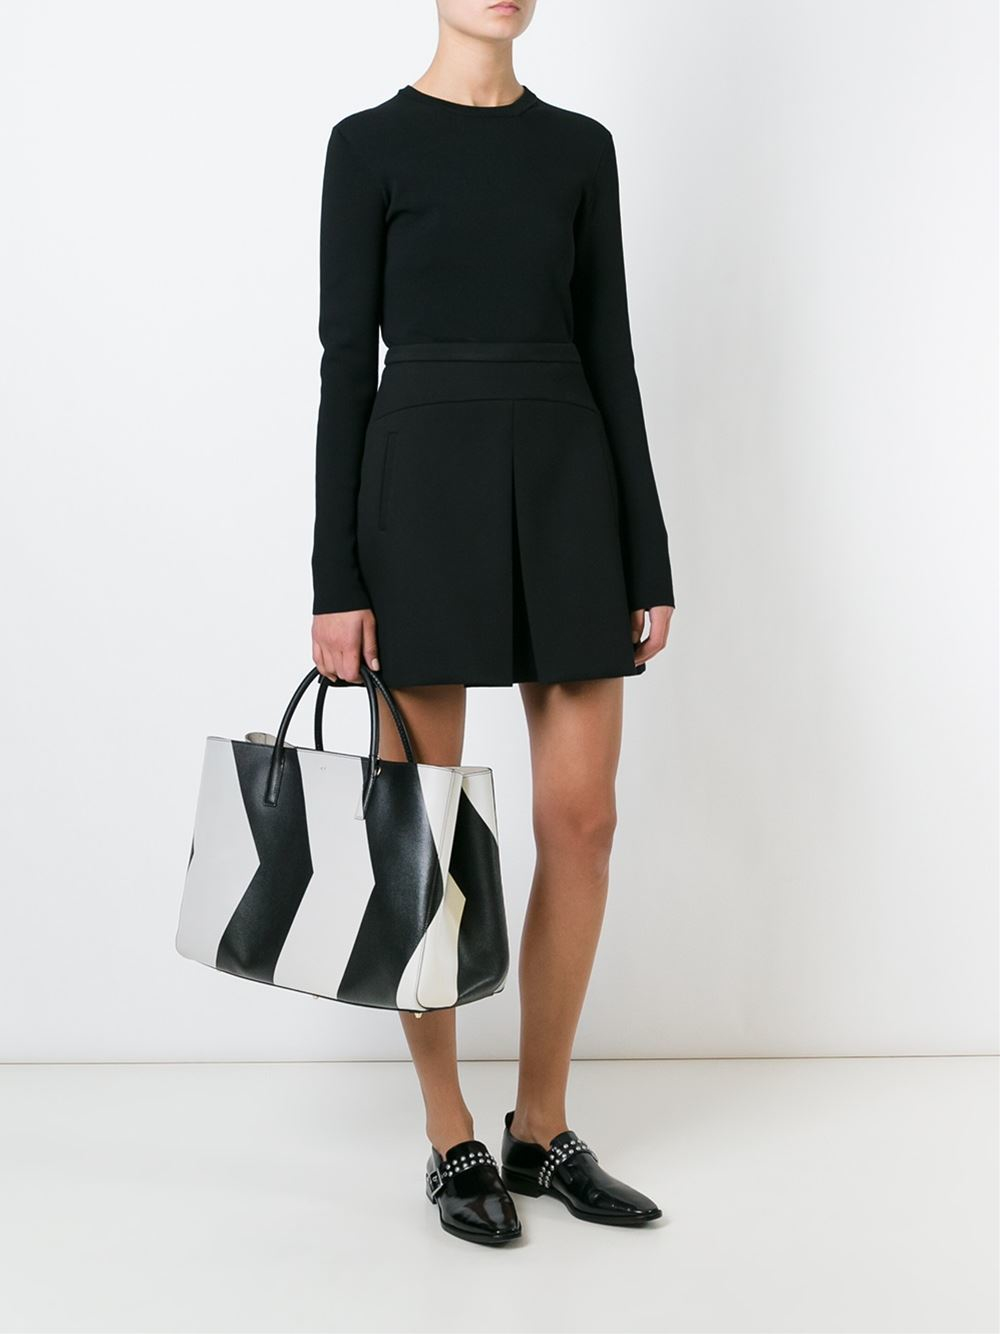 Anya Hindmarch 'chevrons Maxi Featherweight Ebury' Tote in Black